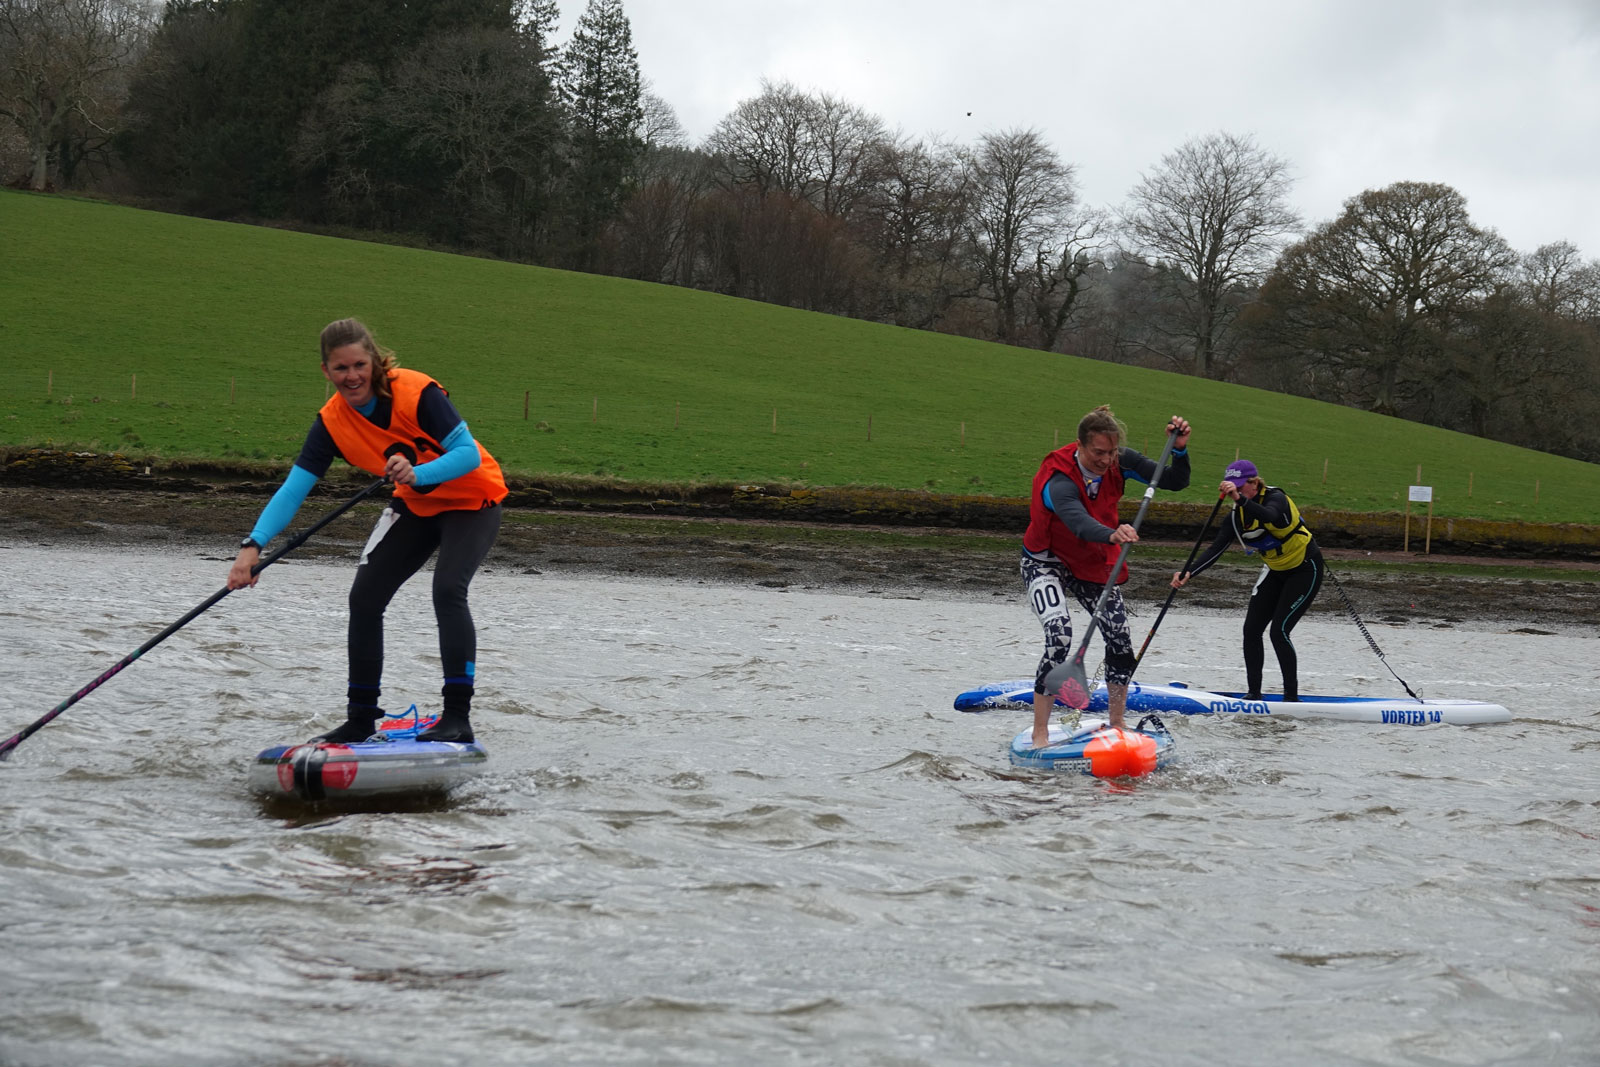 starboard-sup-Head-of-the-Dart-SUP-Challenge-2018-1